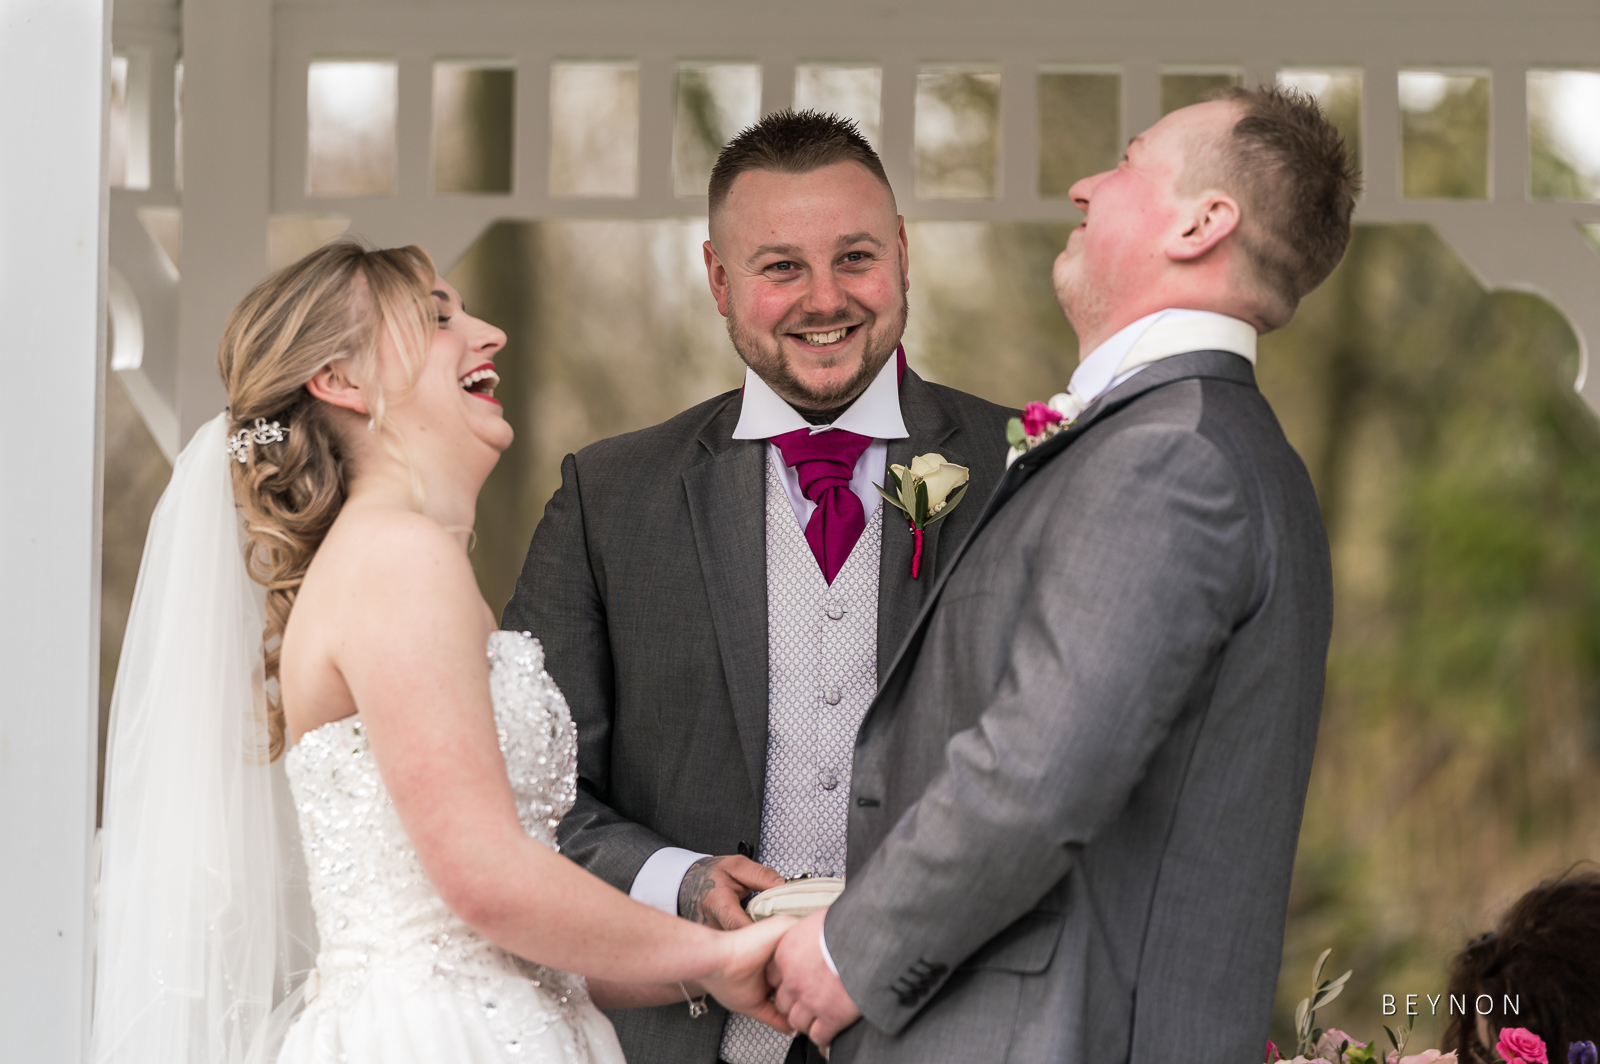 The happy couple laugh during their ceremony